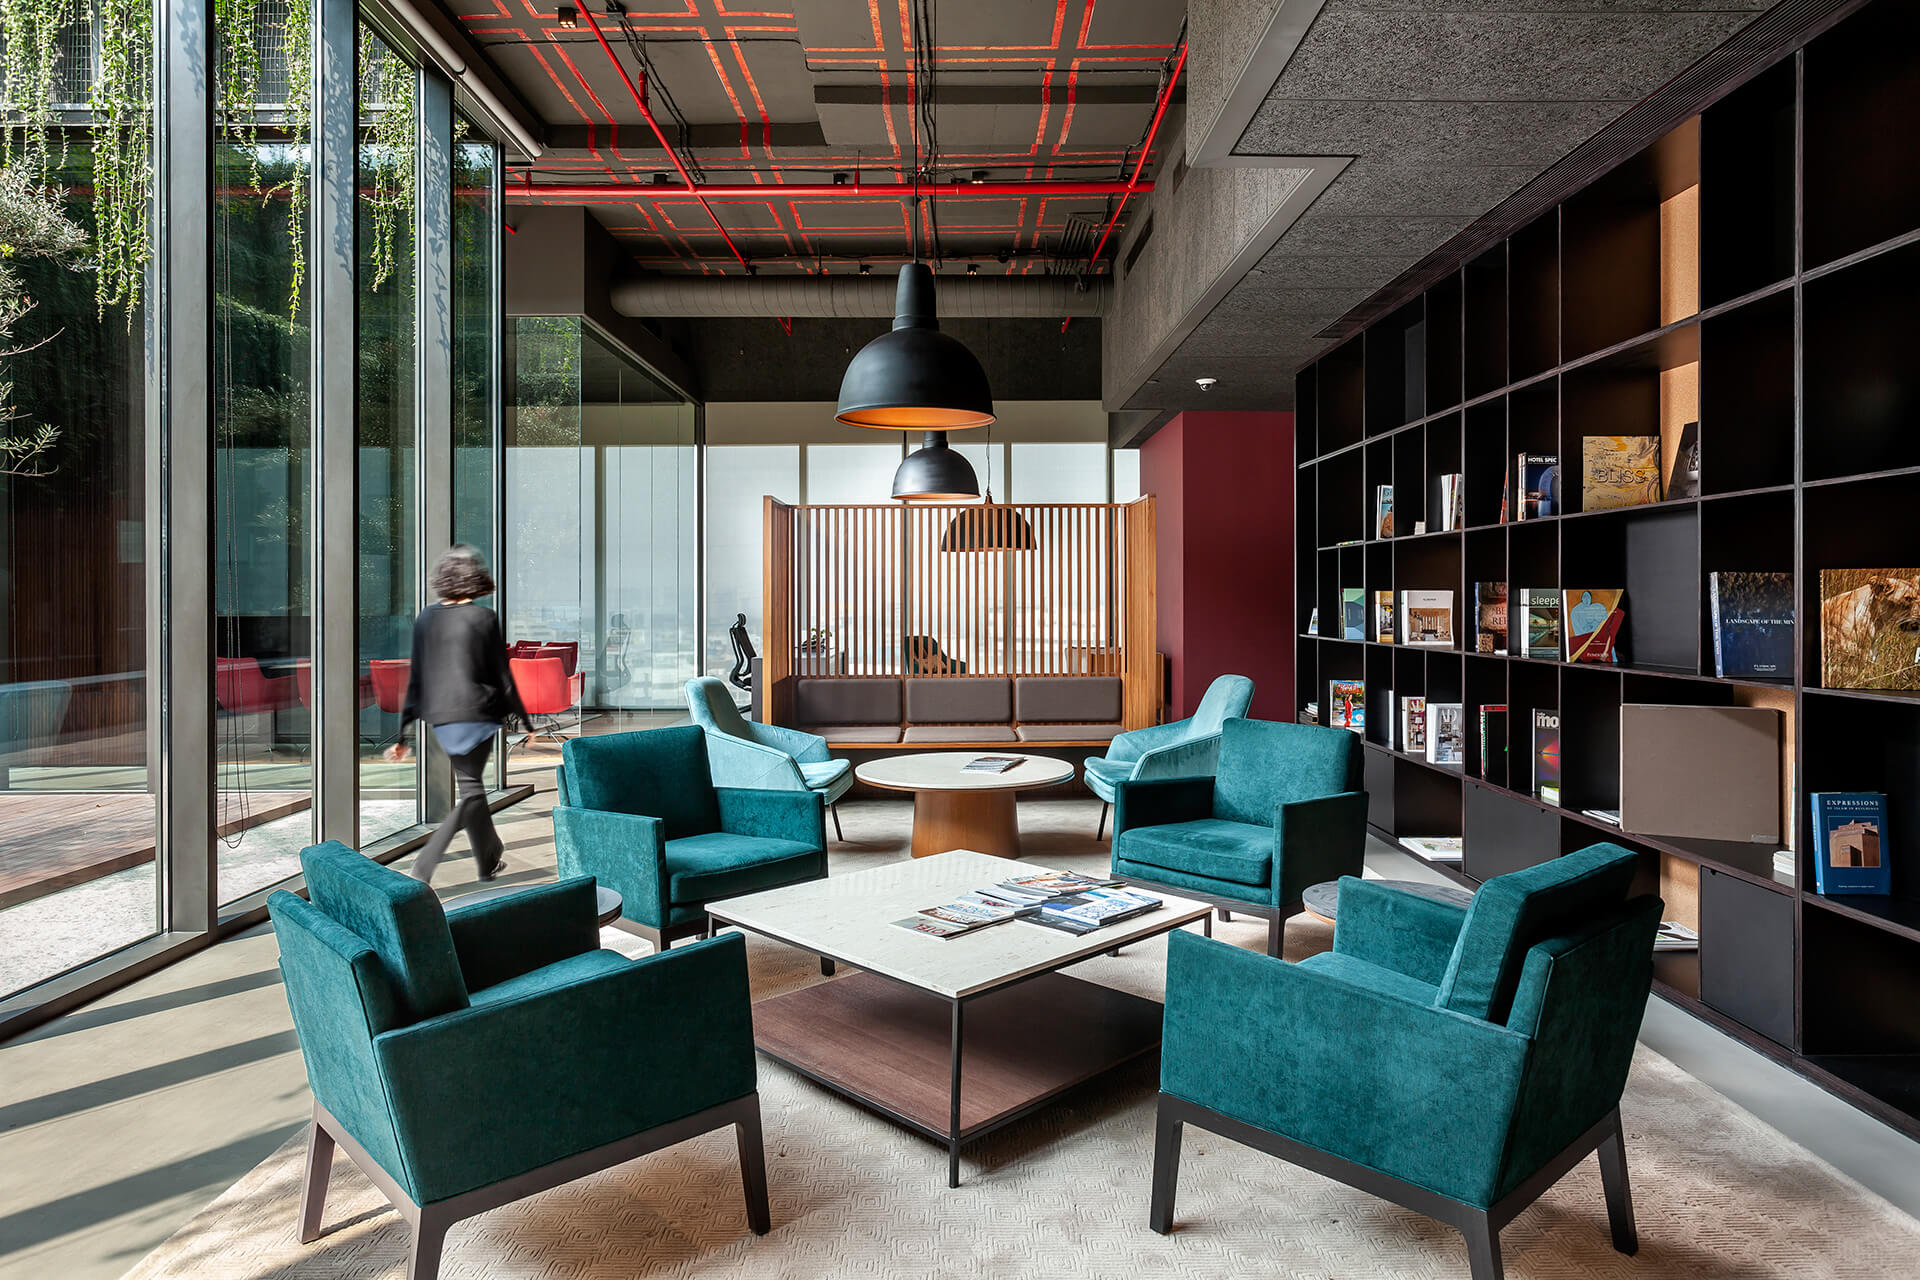 IEclectic furnishing brings dynamic spaces to life | East India Hotels headquarters by Architecture Discipline | STIRworld